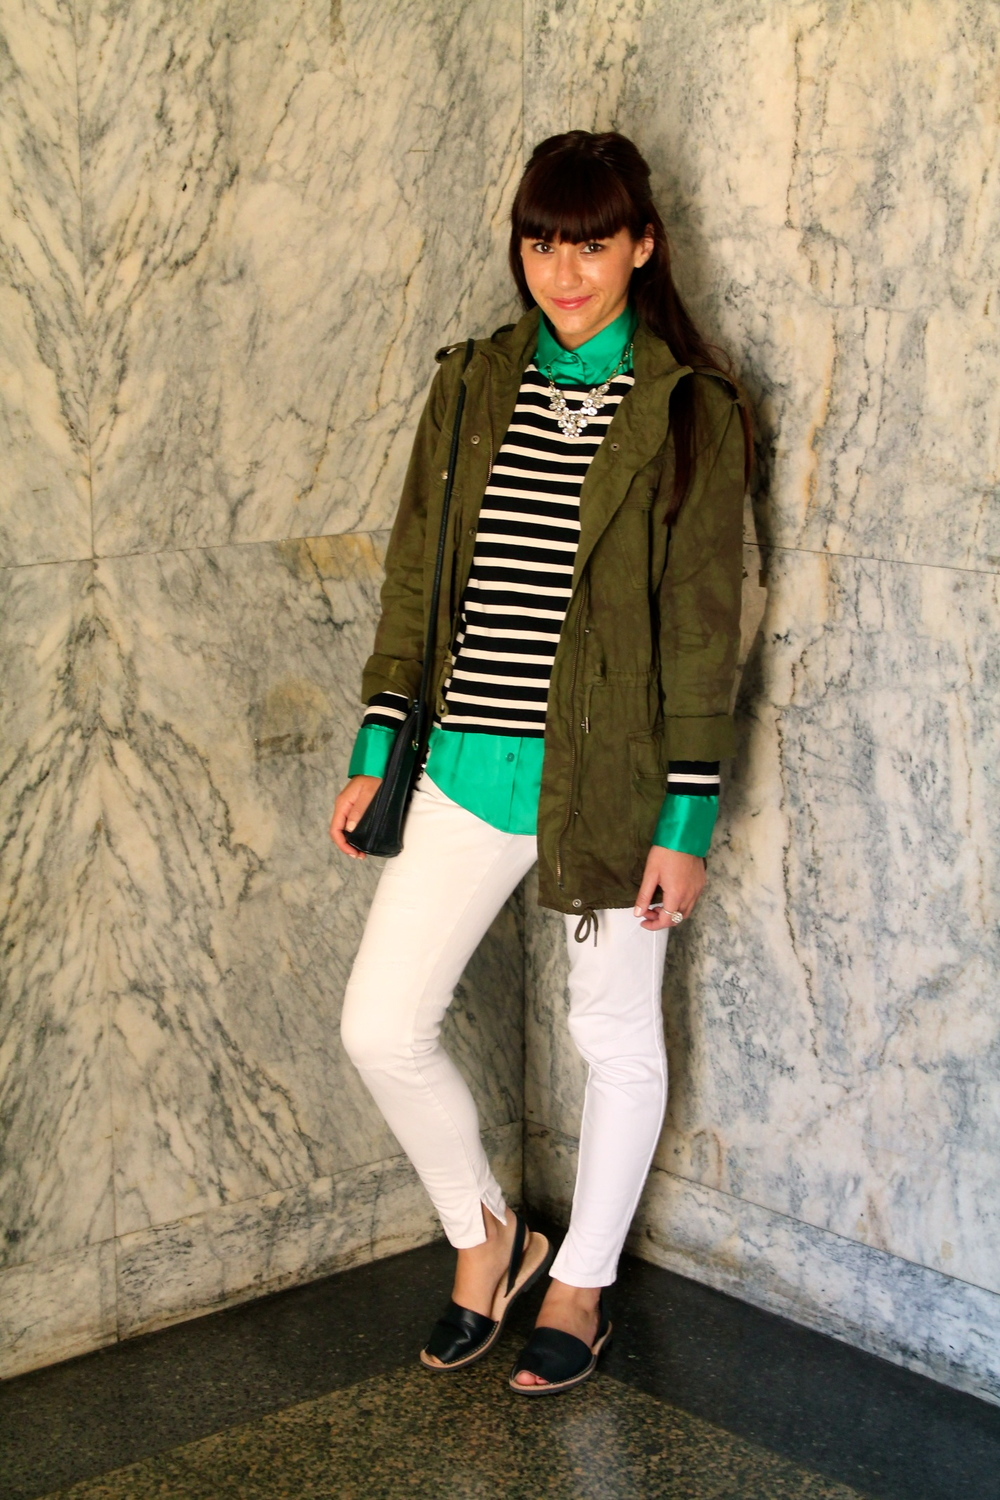 Trooper Jacket: Talula, Aritzia ; Blouse: United Colors of Benetton;  Sweater: J.Crew; Jeans: United Colors of Benetton;  Abracas: Jigsaw London ; Bag: Vintage; Necklace: J.Crew